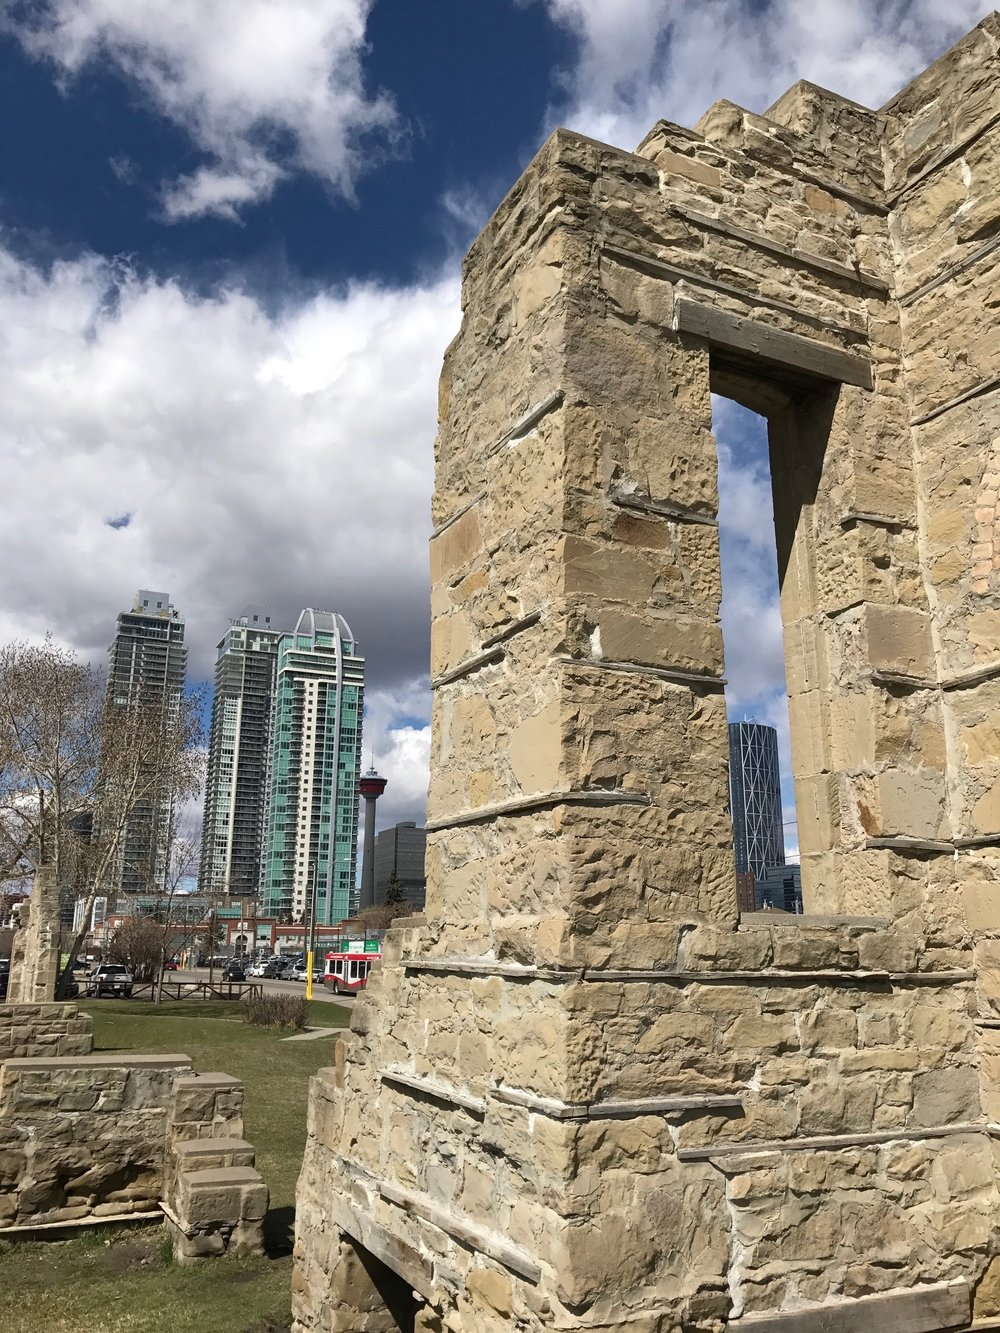 Victoria Park is one of Calgary's oldest communities.  Link: Victoria Park Ruins